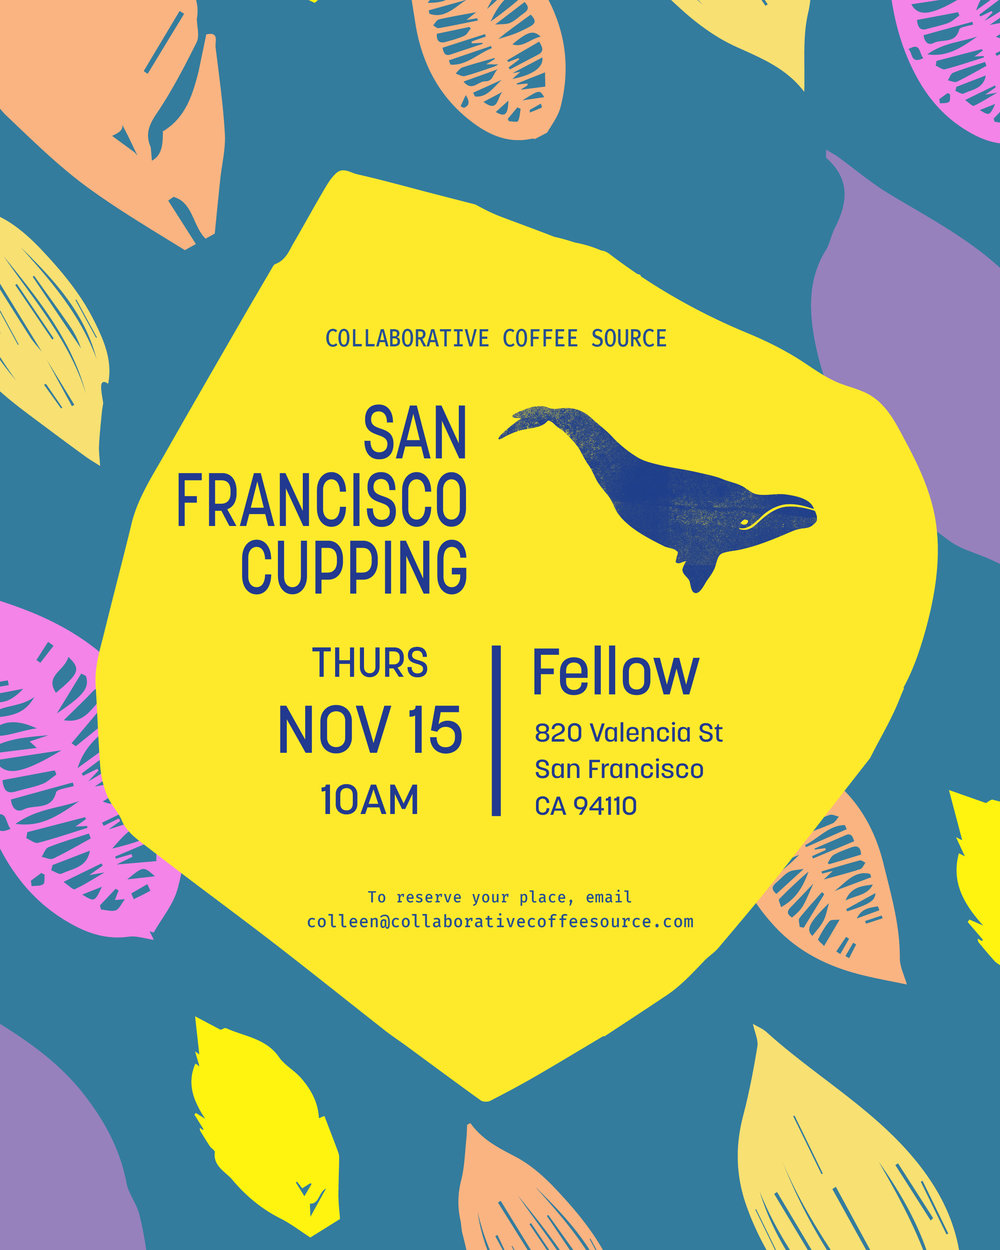 San Francisco Cupping.jpg